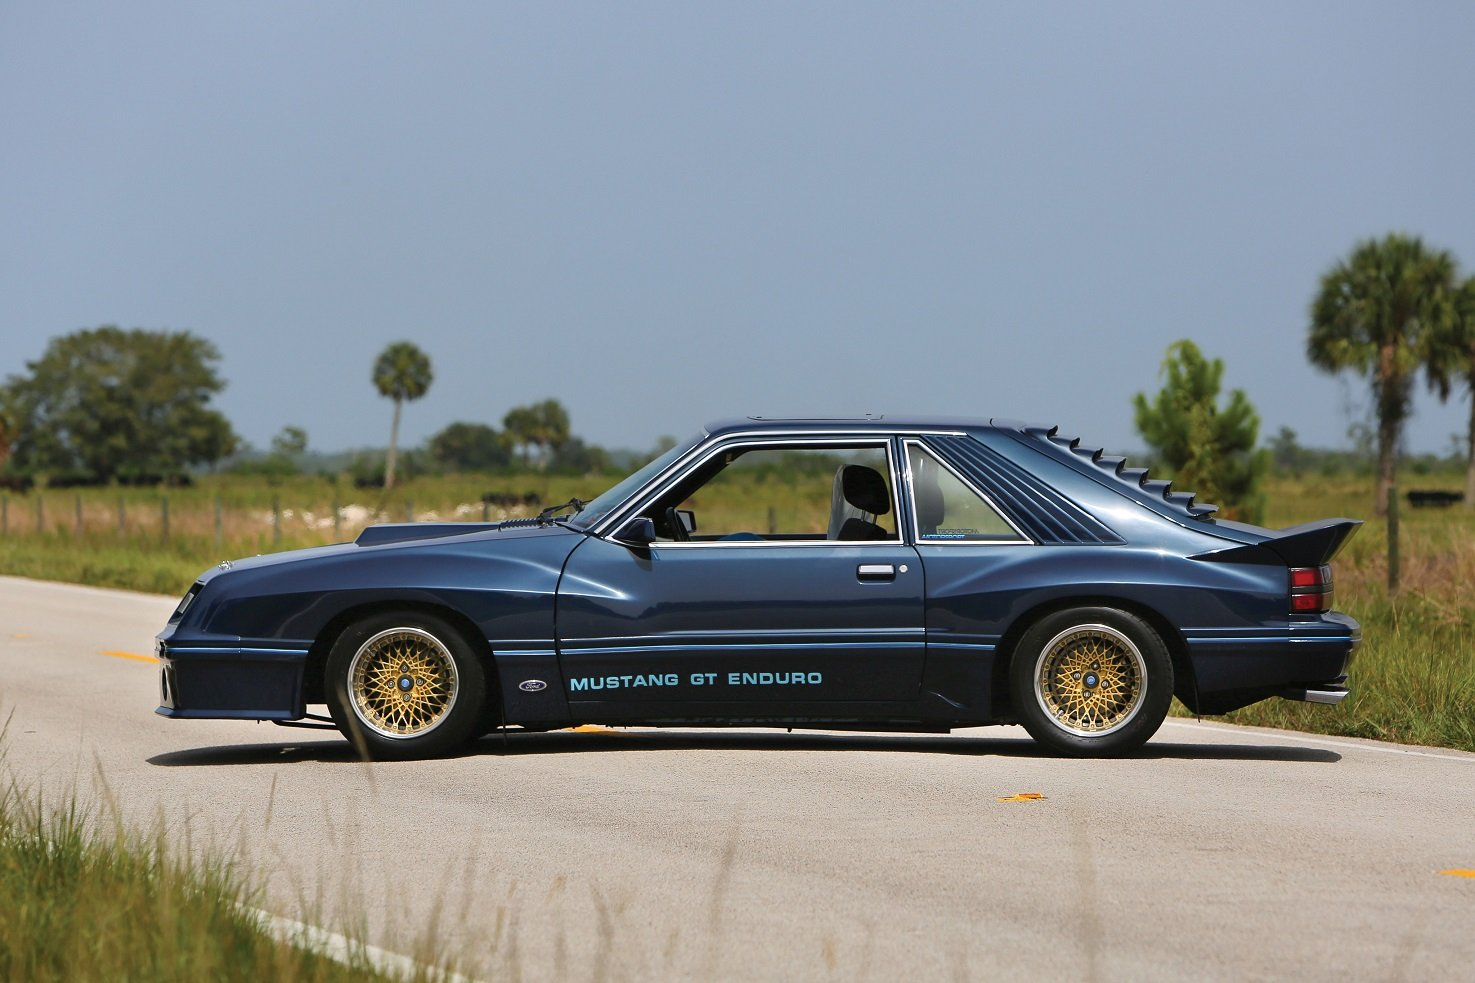 1980 Ford Mustang-GT Enduro Show Cars wallpaper   1475x983   742078   WallpaperUP